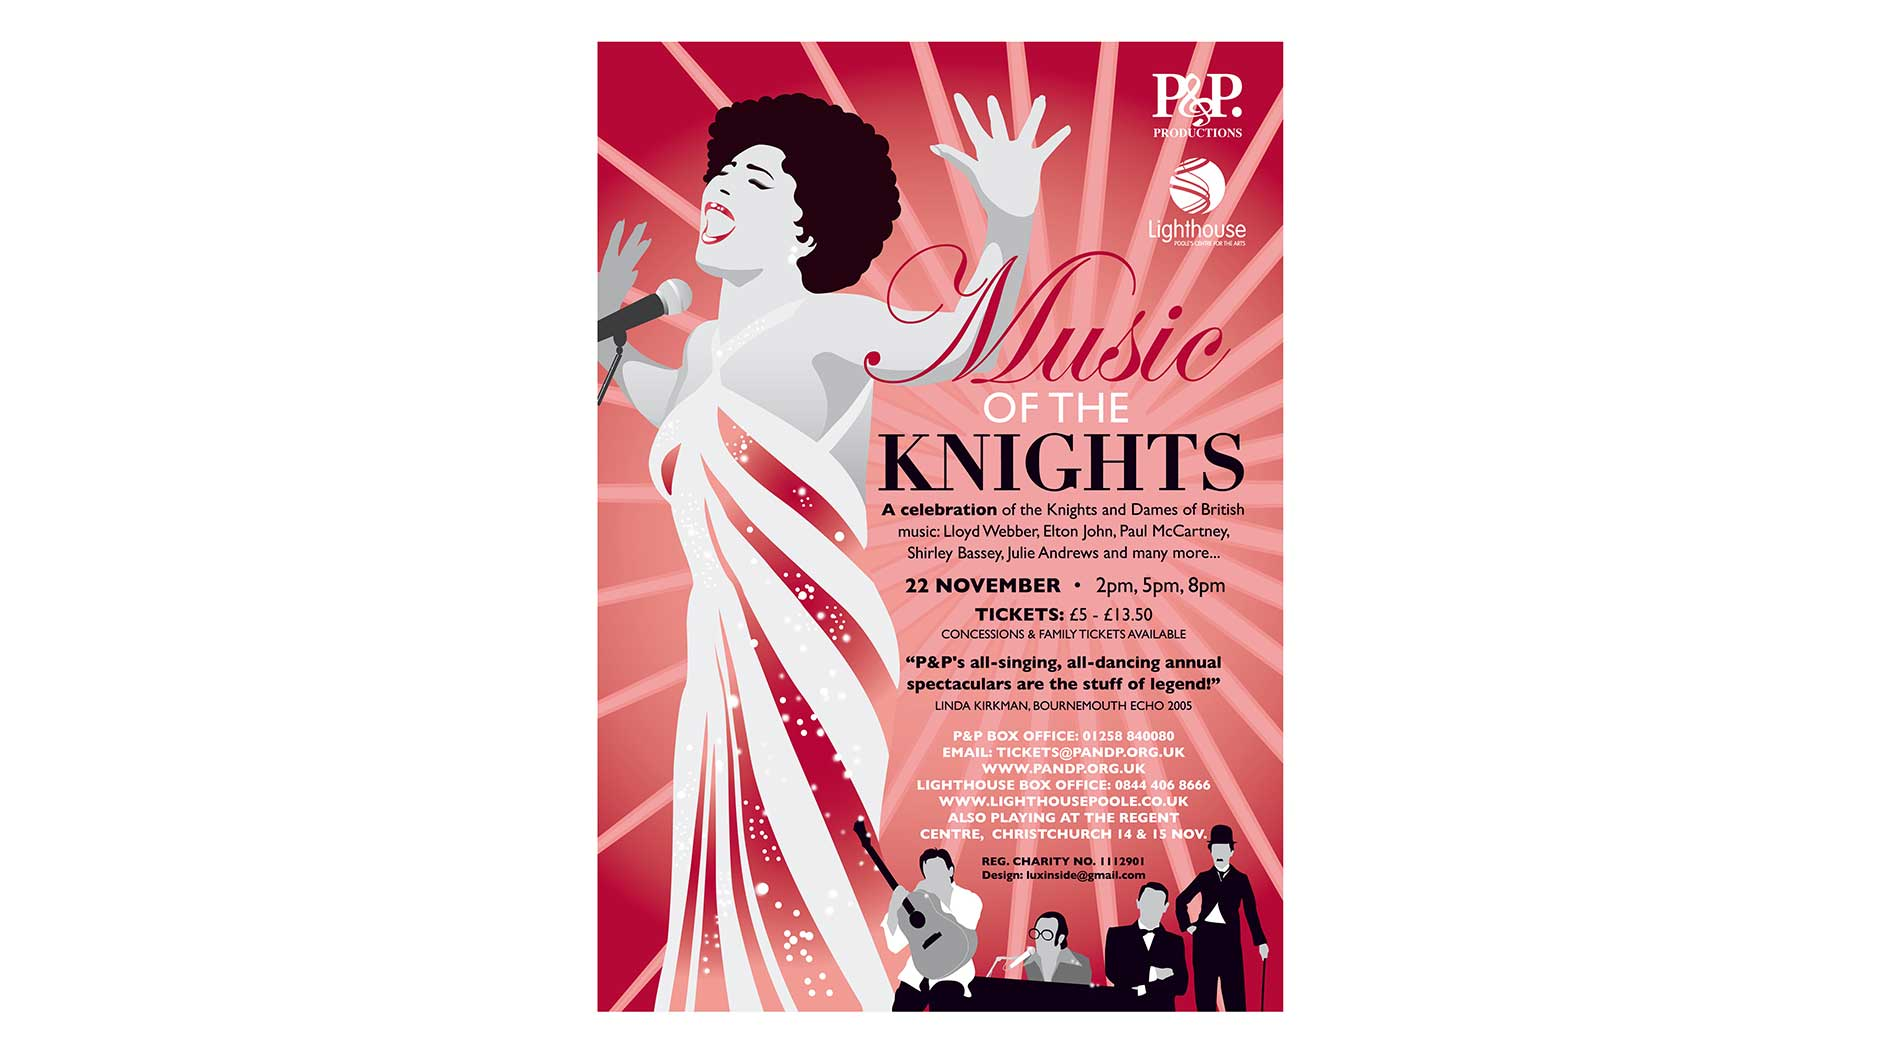 Music of the Knights poster design